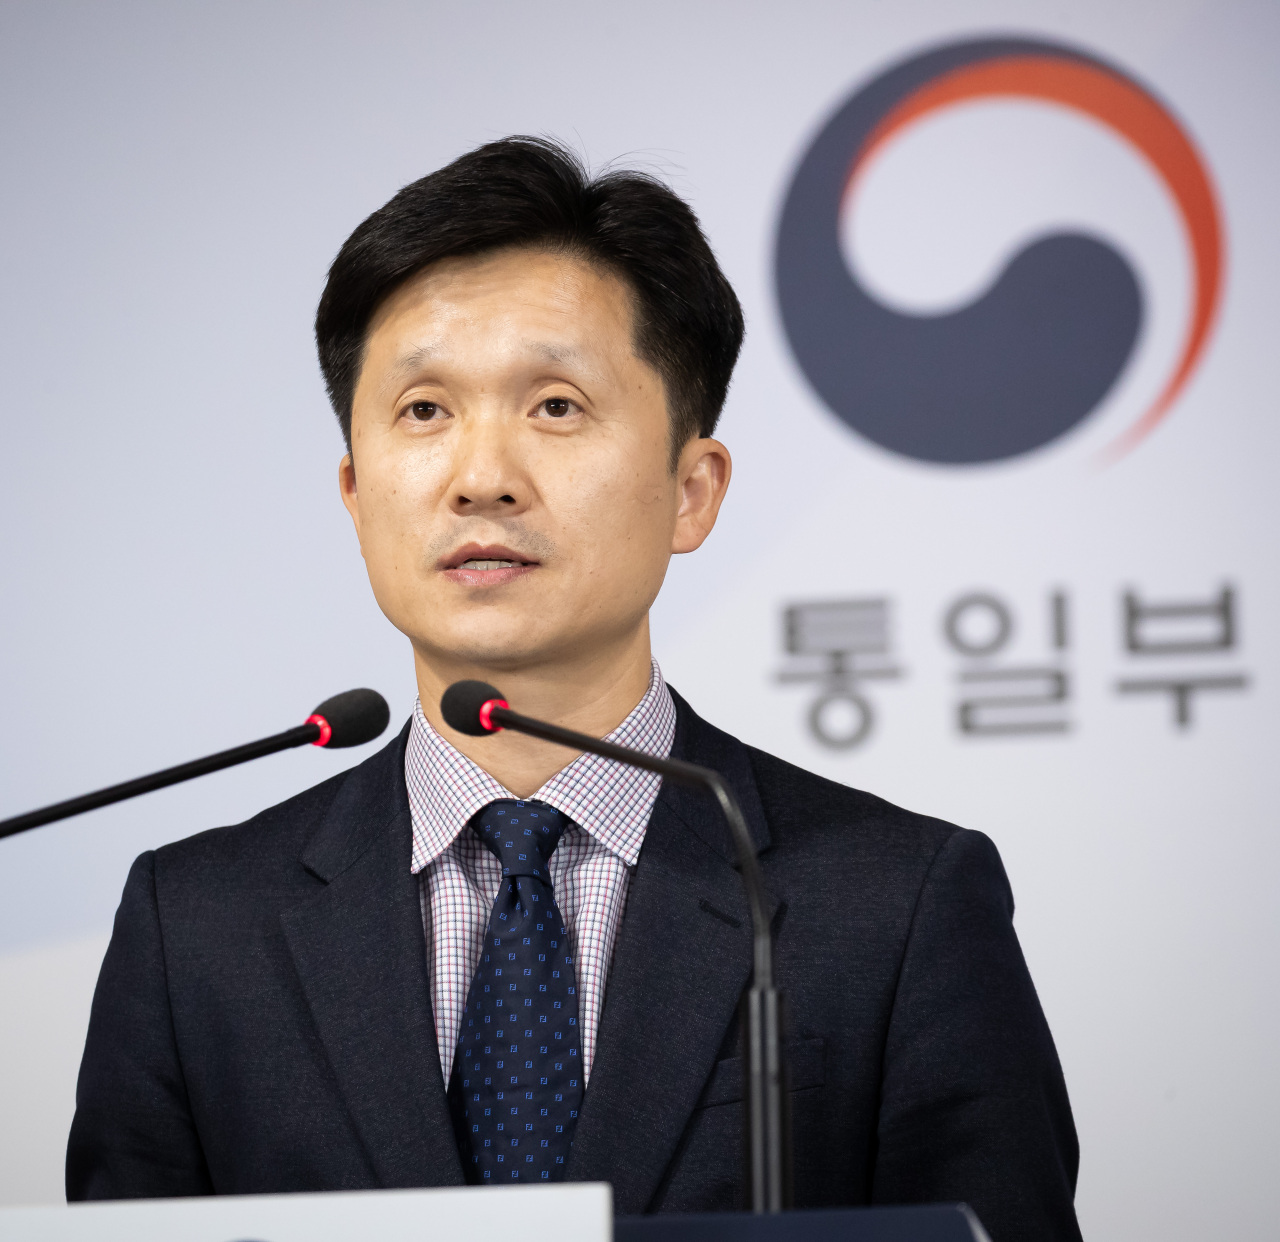 Unification Ministry spokesperson Lee Sang-min holds a press briefing on the deportation of North Korean fishermen at the Government Complex Seoul in downtown Seoul on Nov. 7, 2019. (Yonhap)